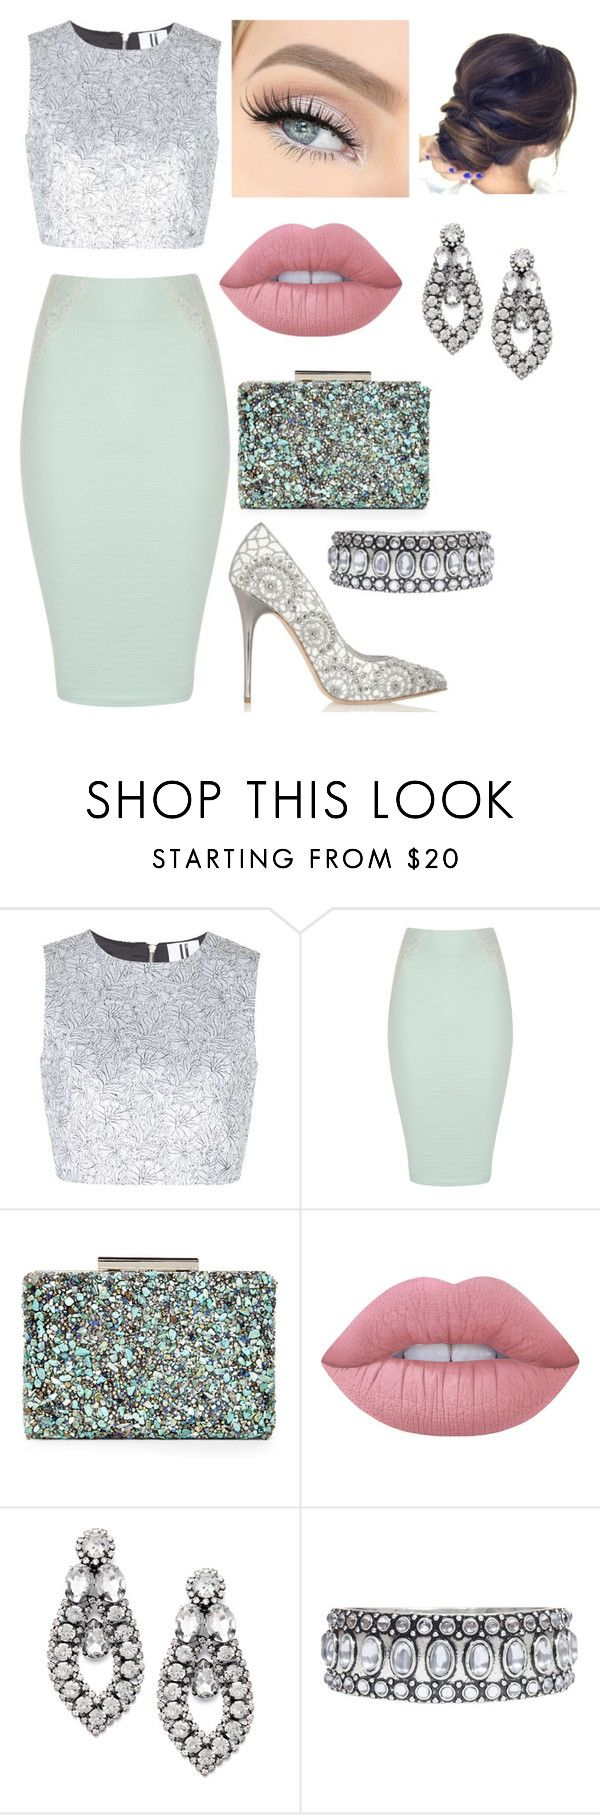 """Vestuário de dia-a-dia 169"" by joana-baptista18 ❤ liked on Polyvore featuring Unique, Jane Norman, Lime Crime, Alexander McQueen, Bar III and Towne & Reese"